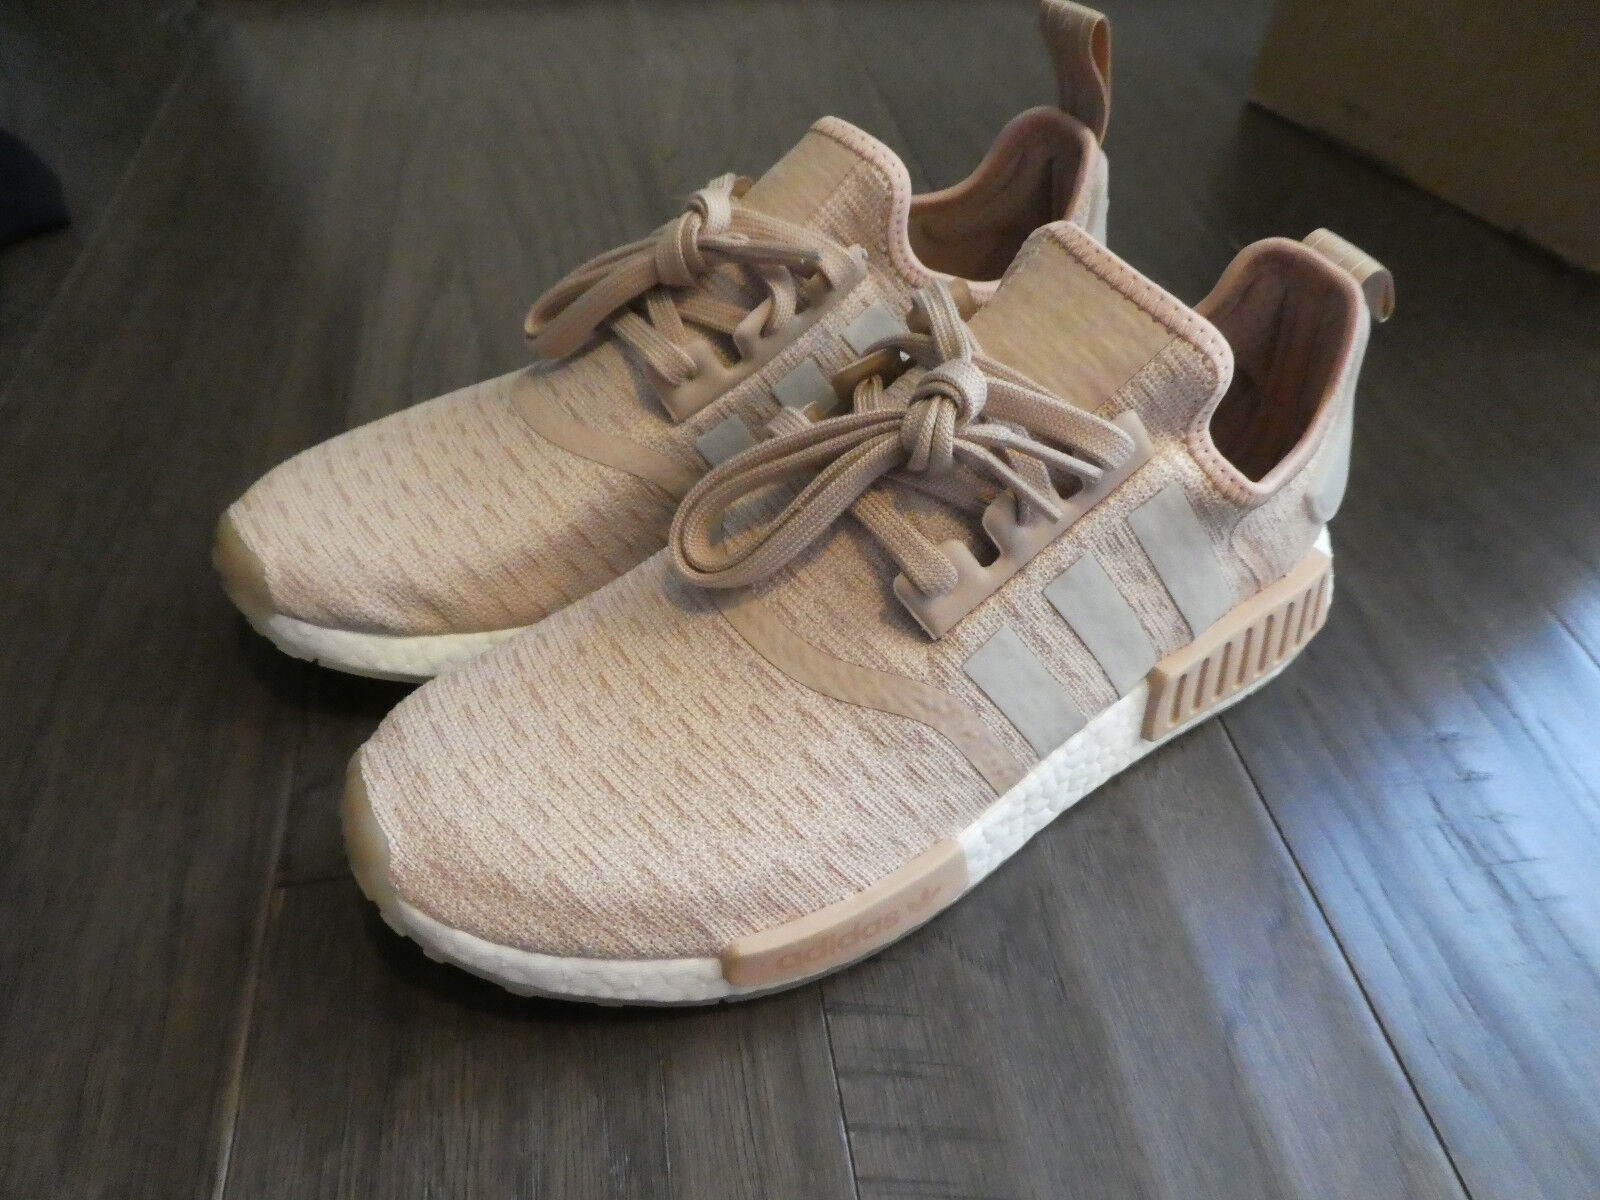 Adidas Women's NMD_R1 Boost shoes sneakers new CQ2012 Ash Pearl Chalk